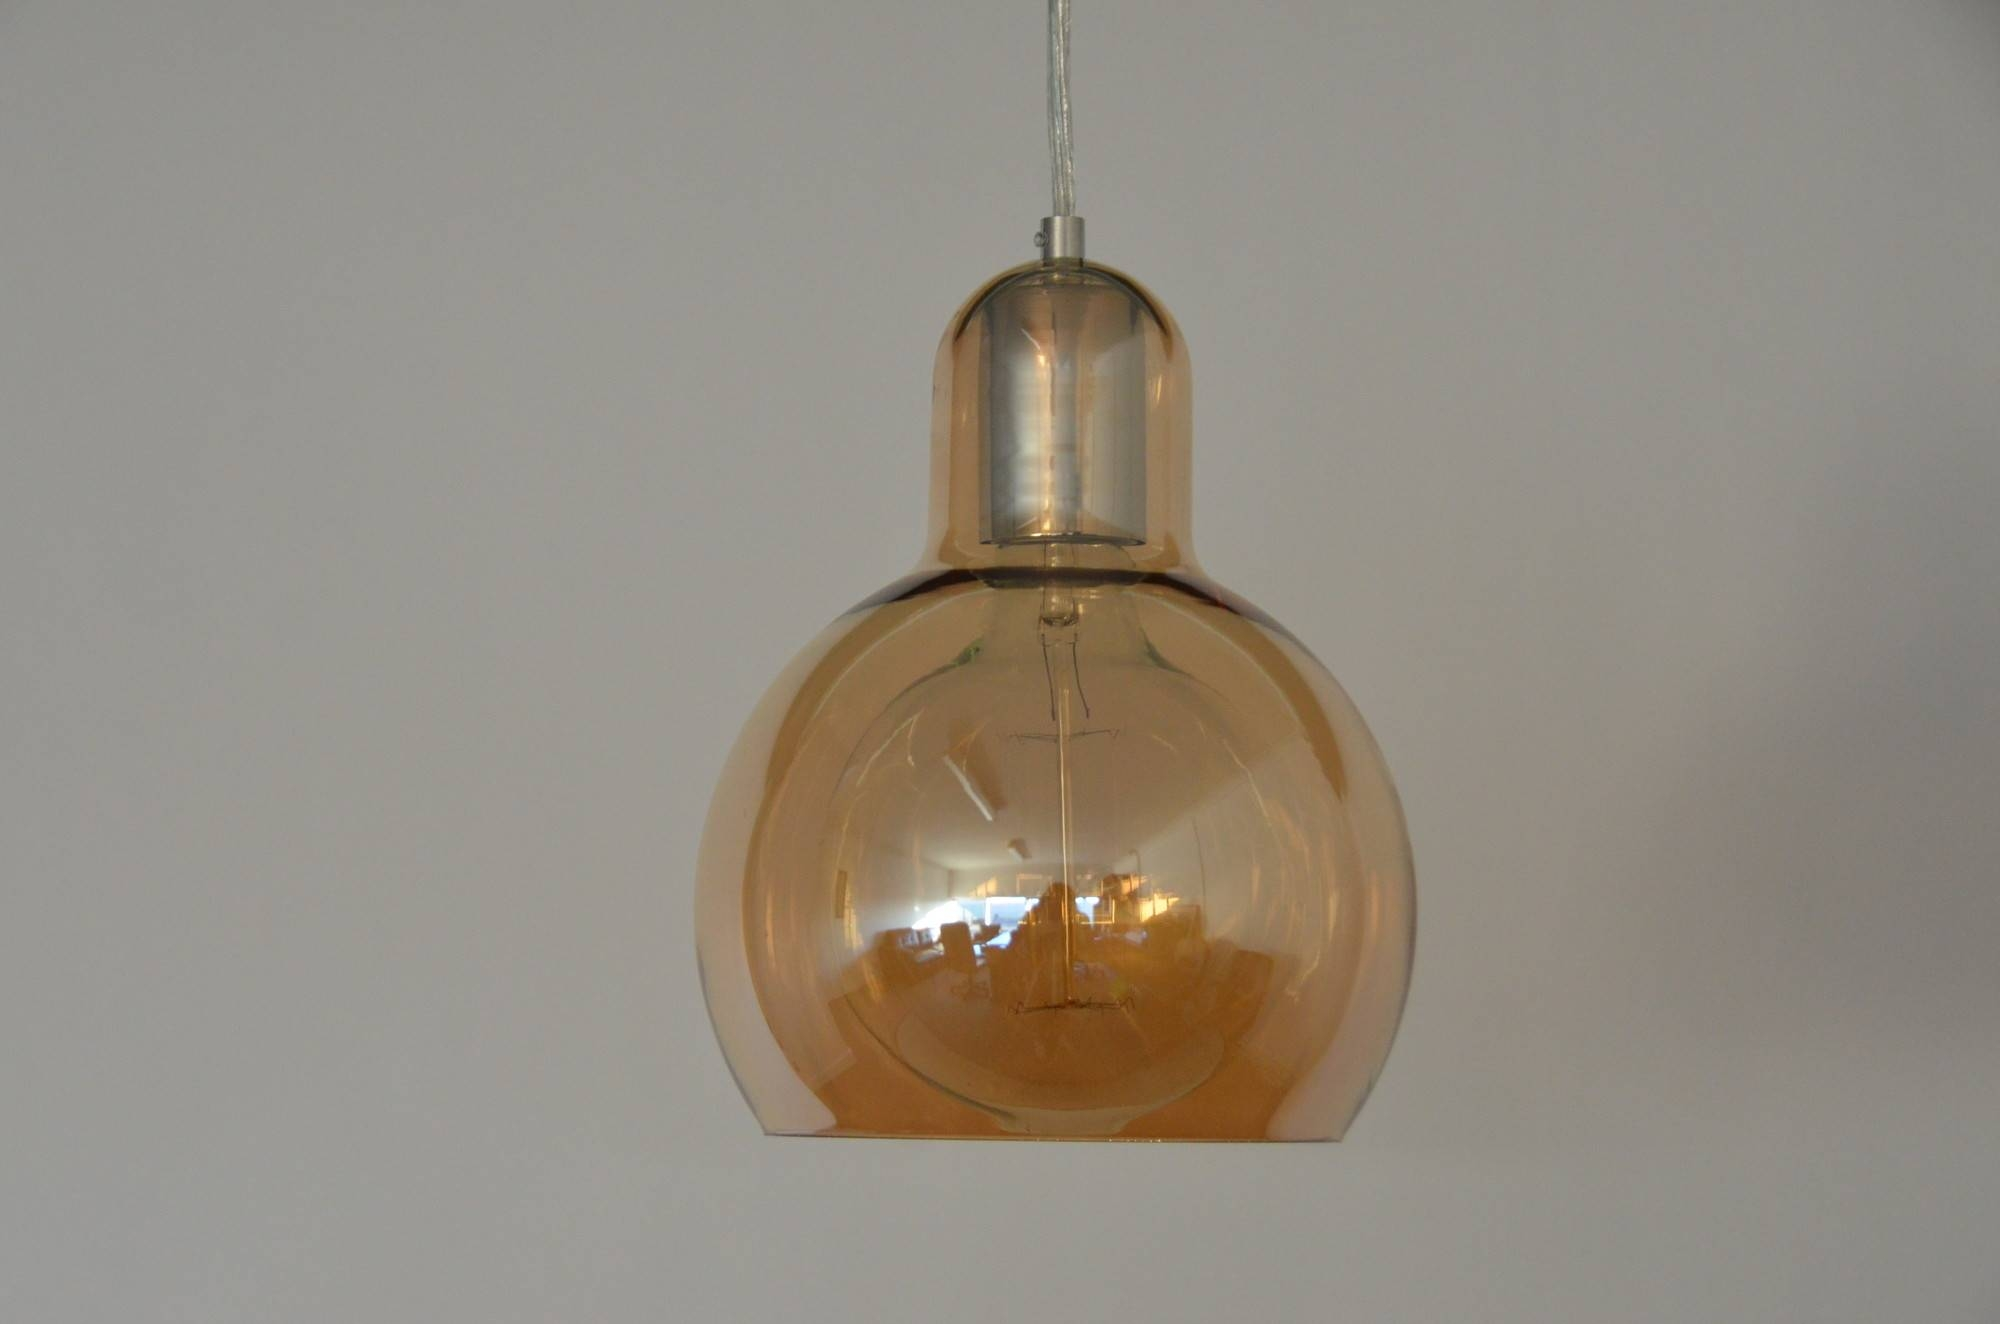 Mega Bulb Pendant Light Replica | Temple & Webster throughout Mega Bulb Pendant Lights (Image 7 of 15)